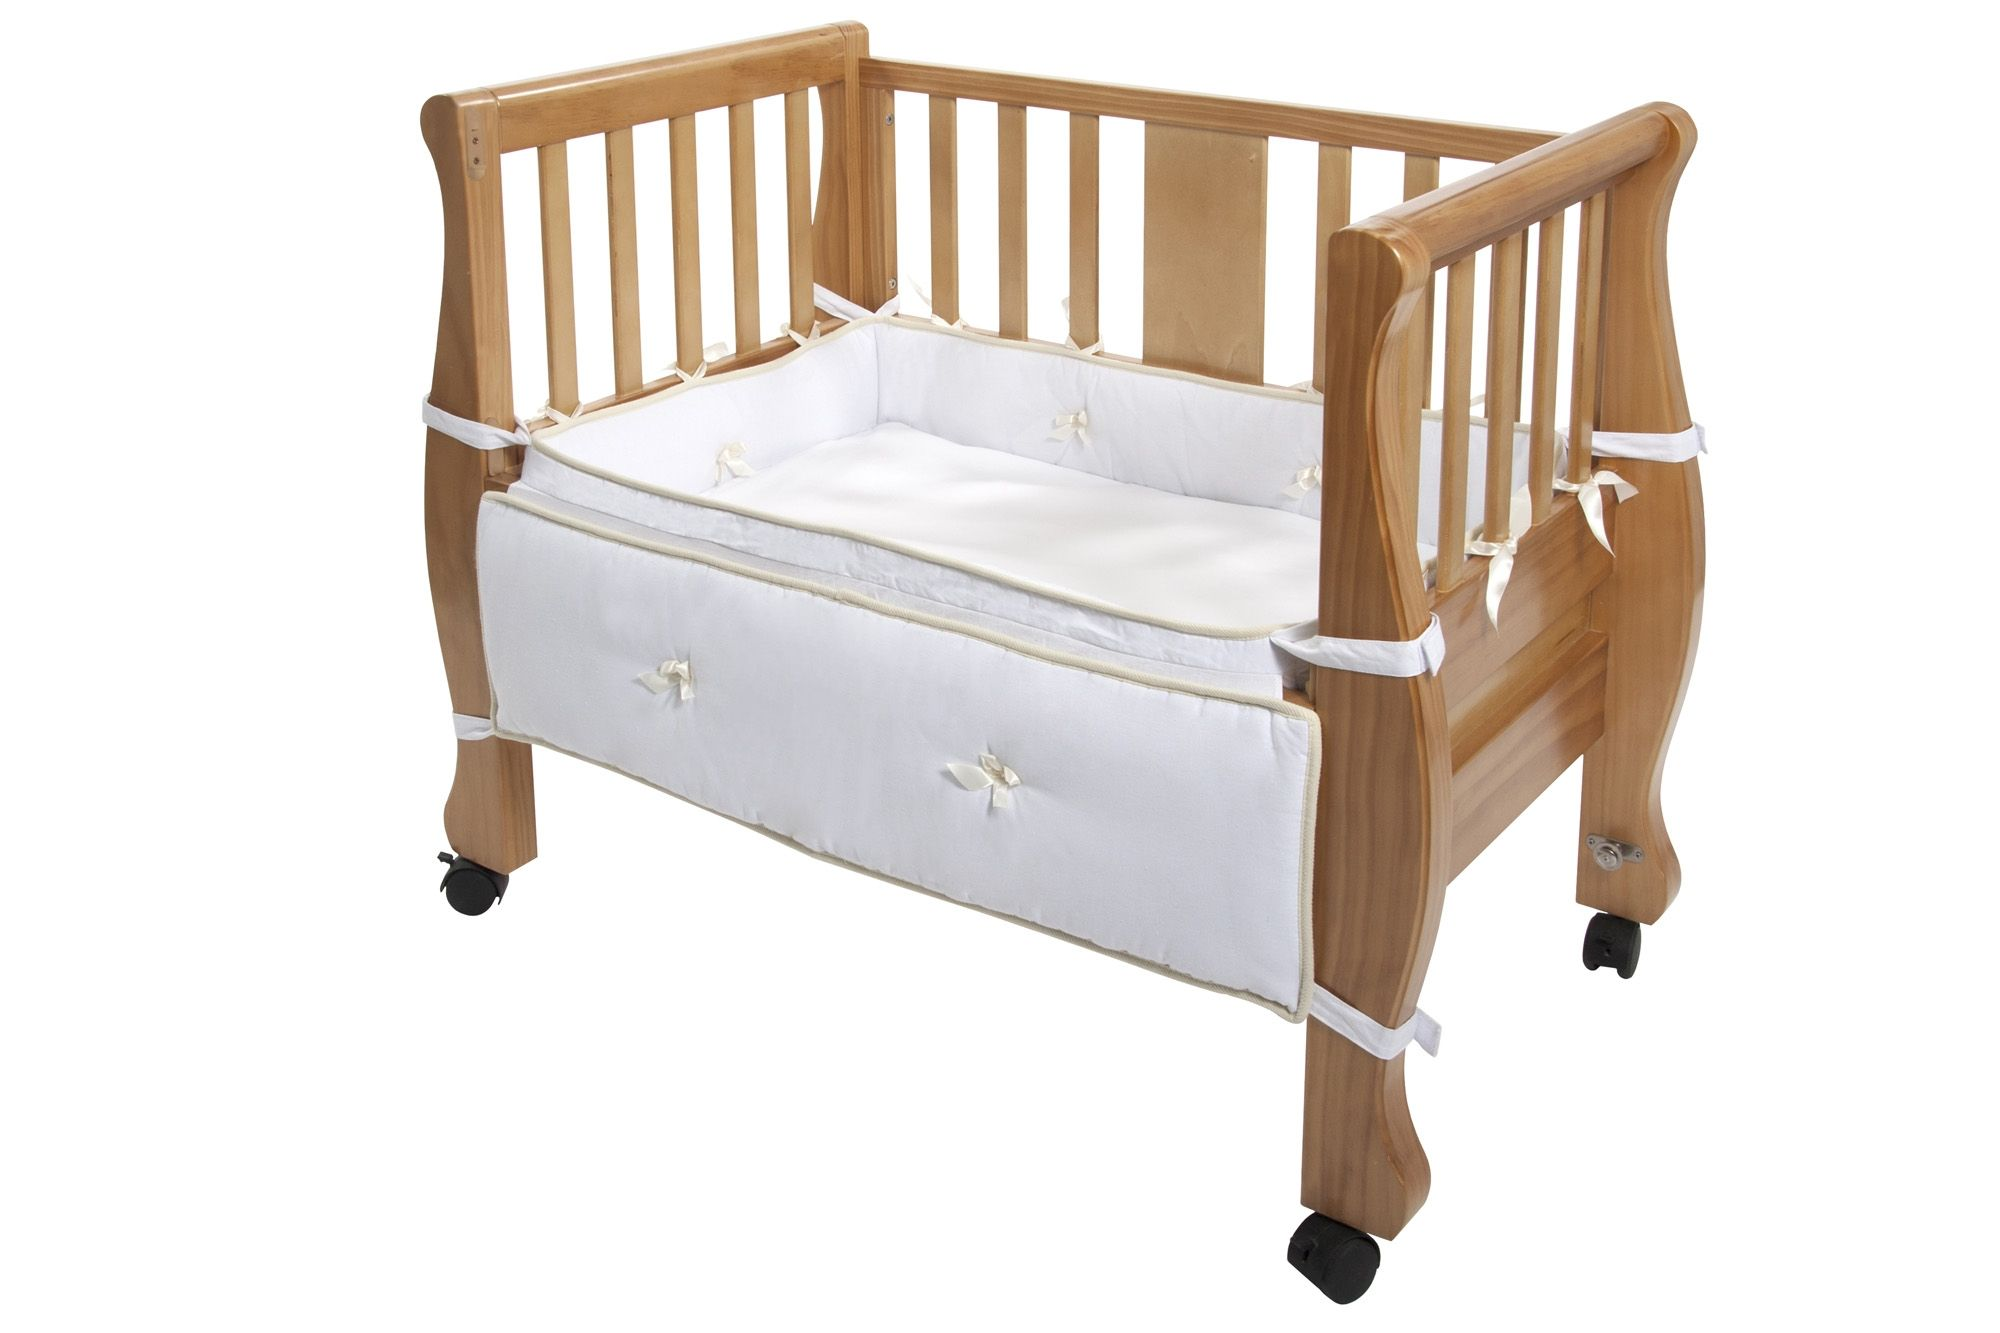 Sleigh Bed Co-Sleeper® looks like you can convert it to a ...